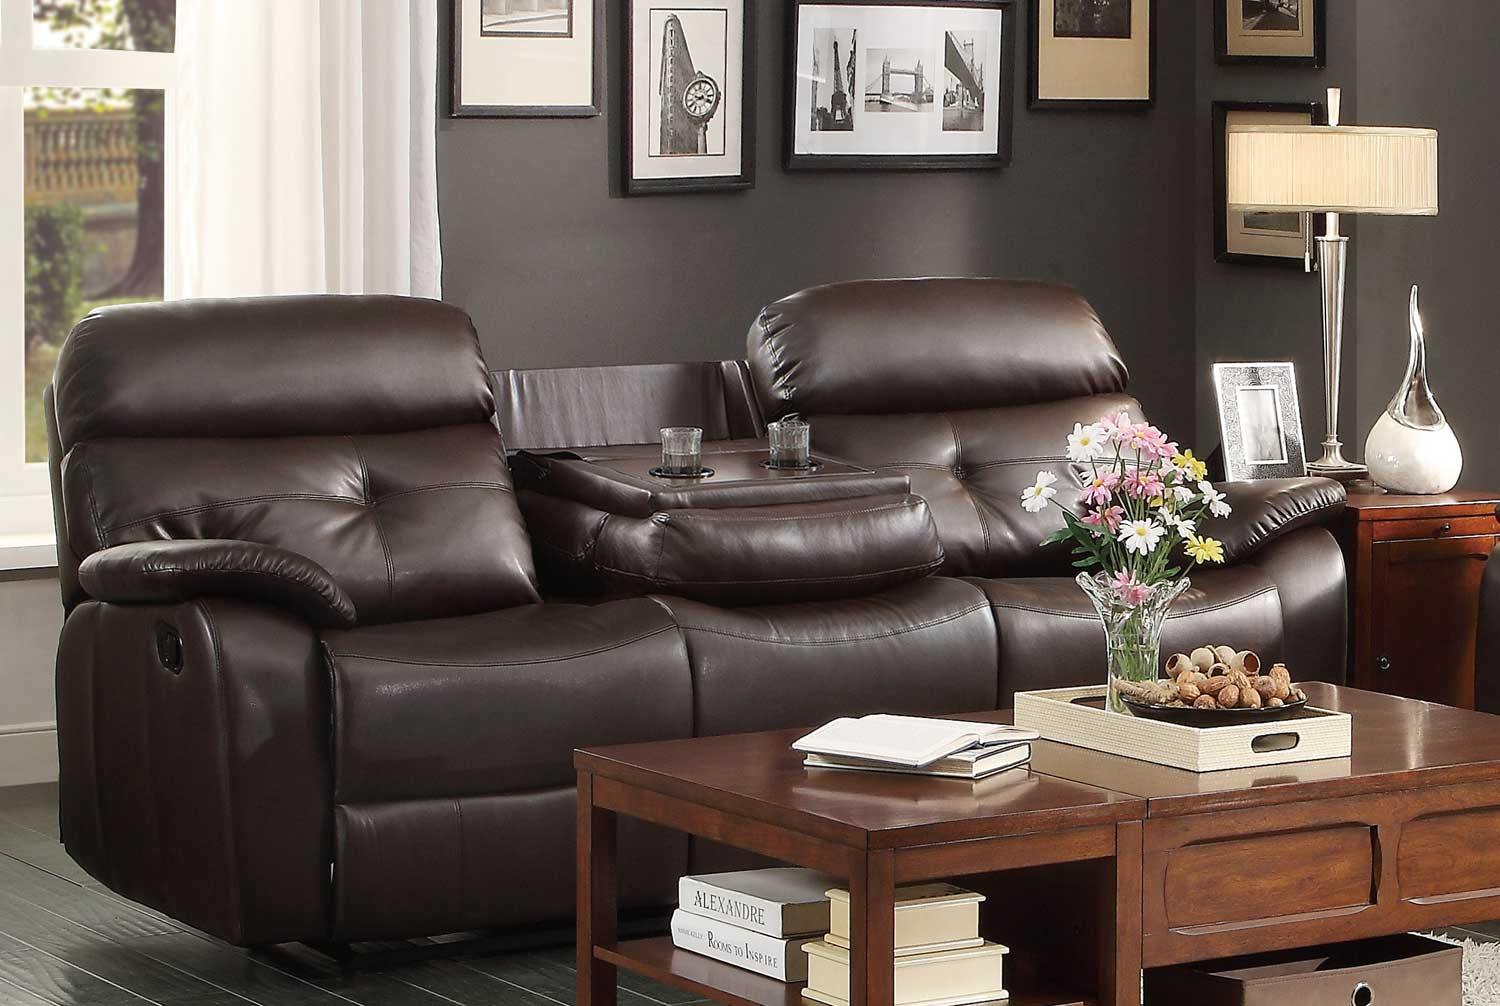 Homelegance Evana Double Reclining Sofa With Drop Down Center Cup Holders Dark Brown Bonded